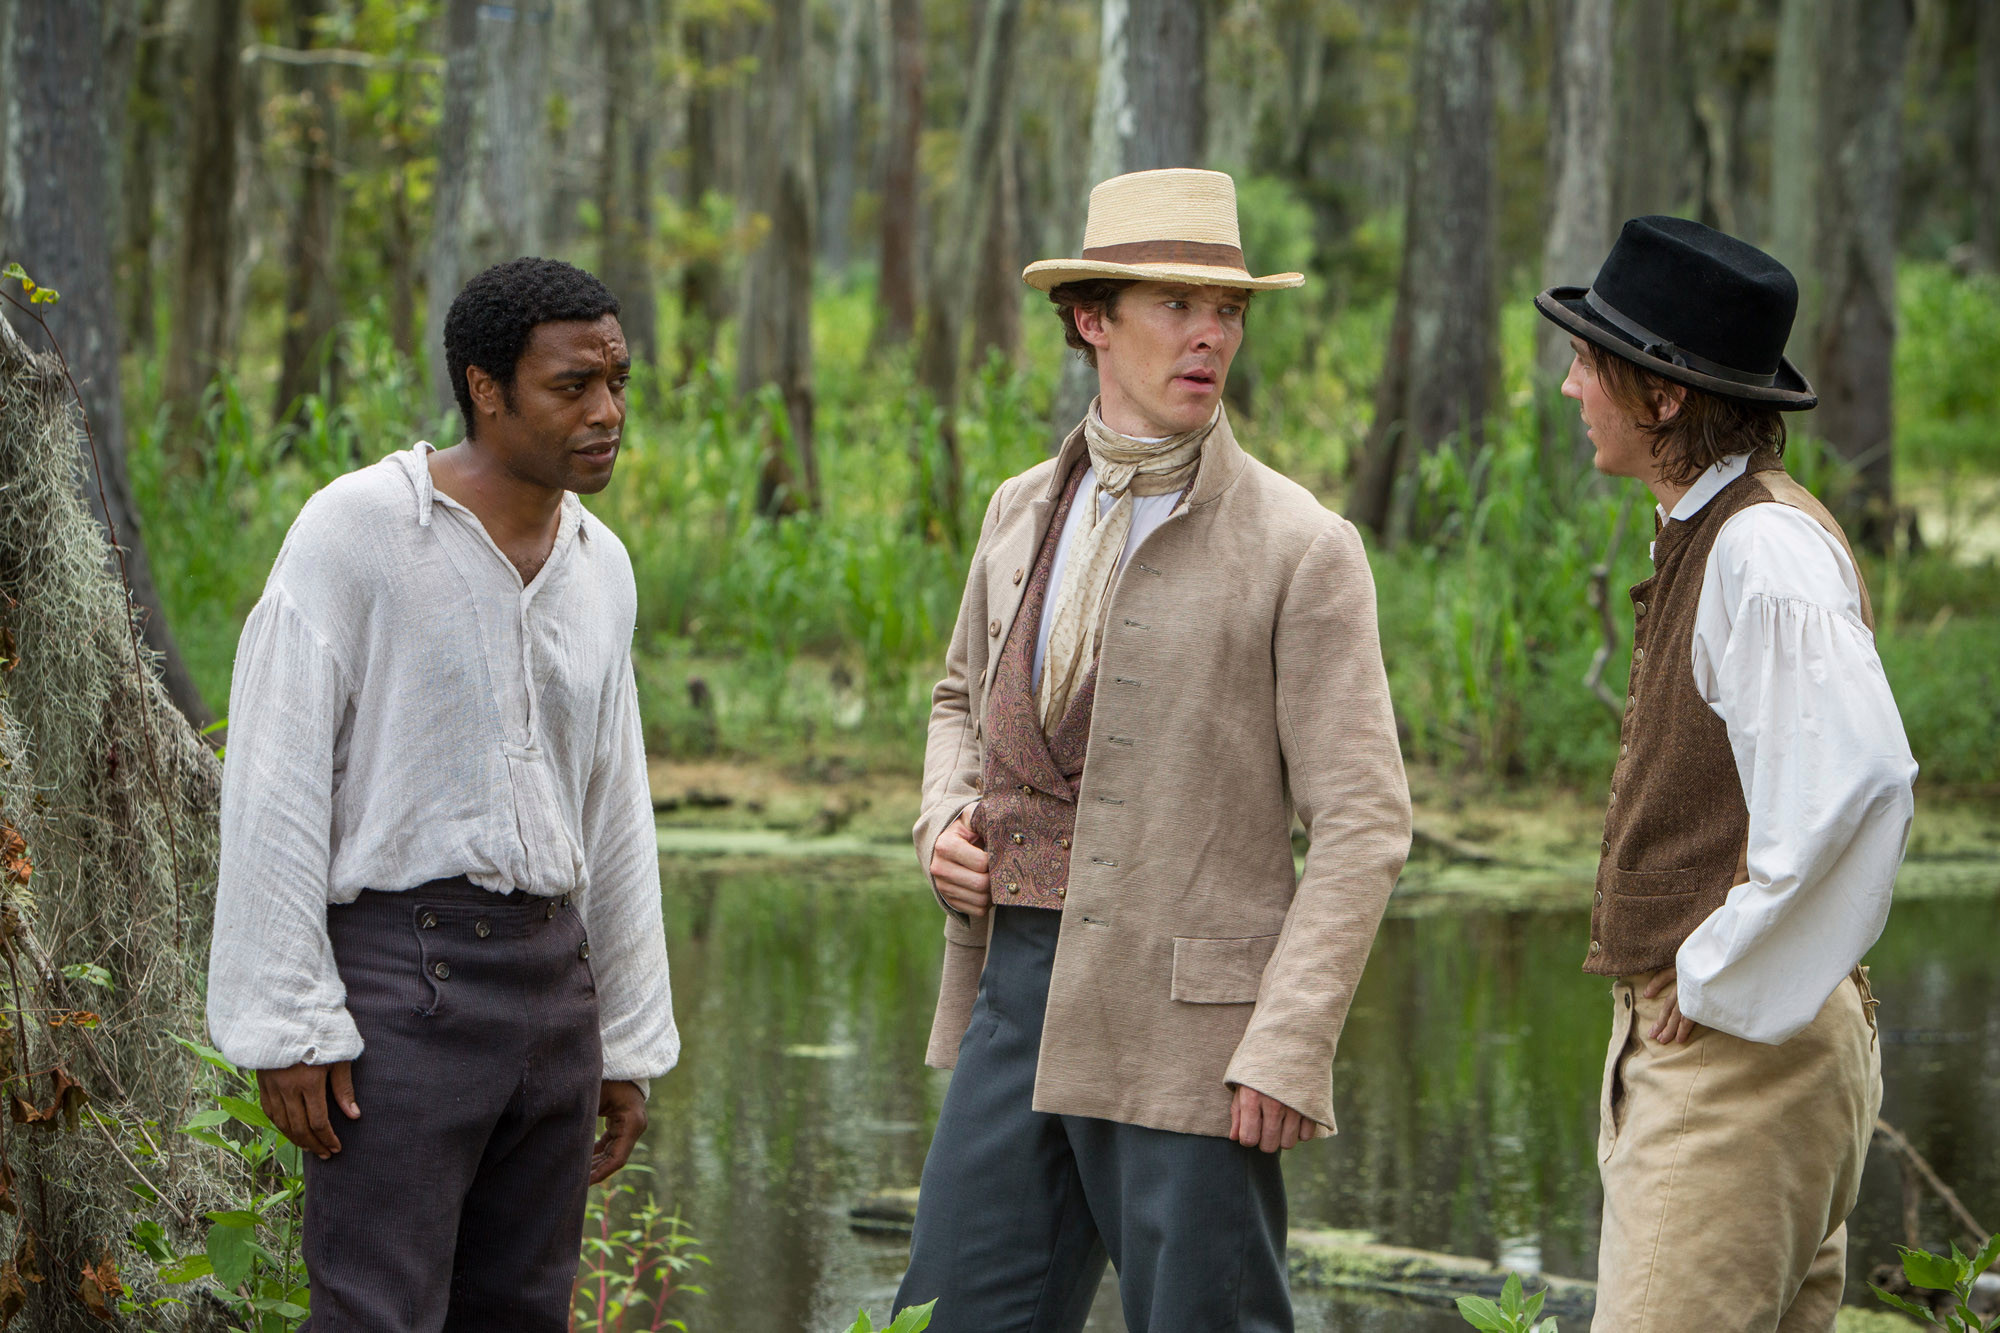 movies-netflix-india-everyone-must-watch-atleast-once-their-lives-12-years-a-slave_image